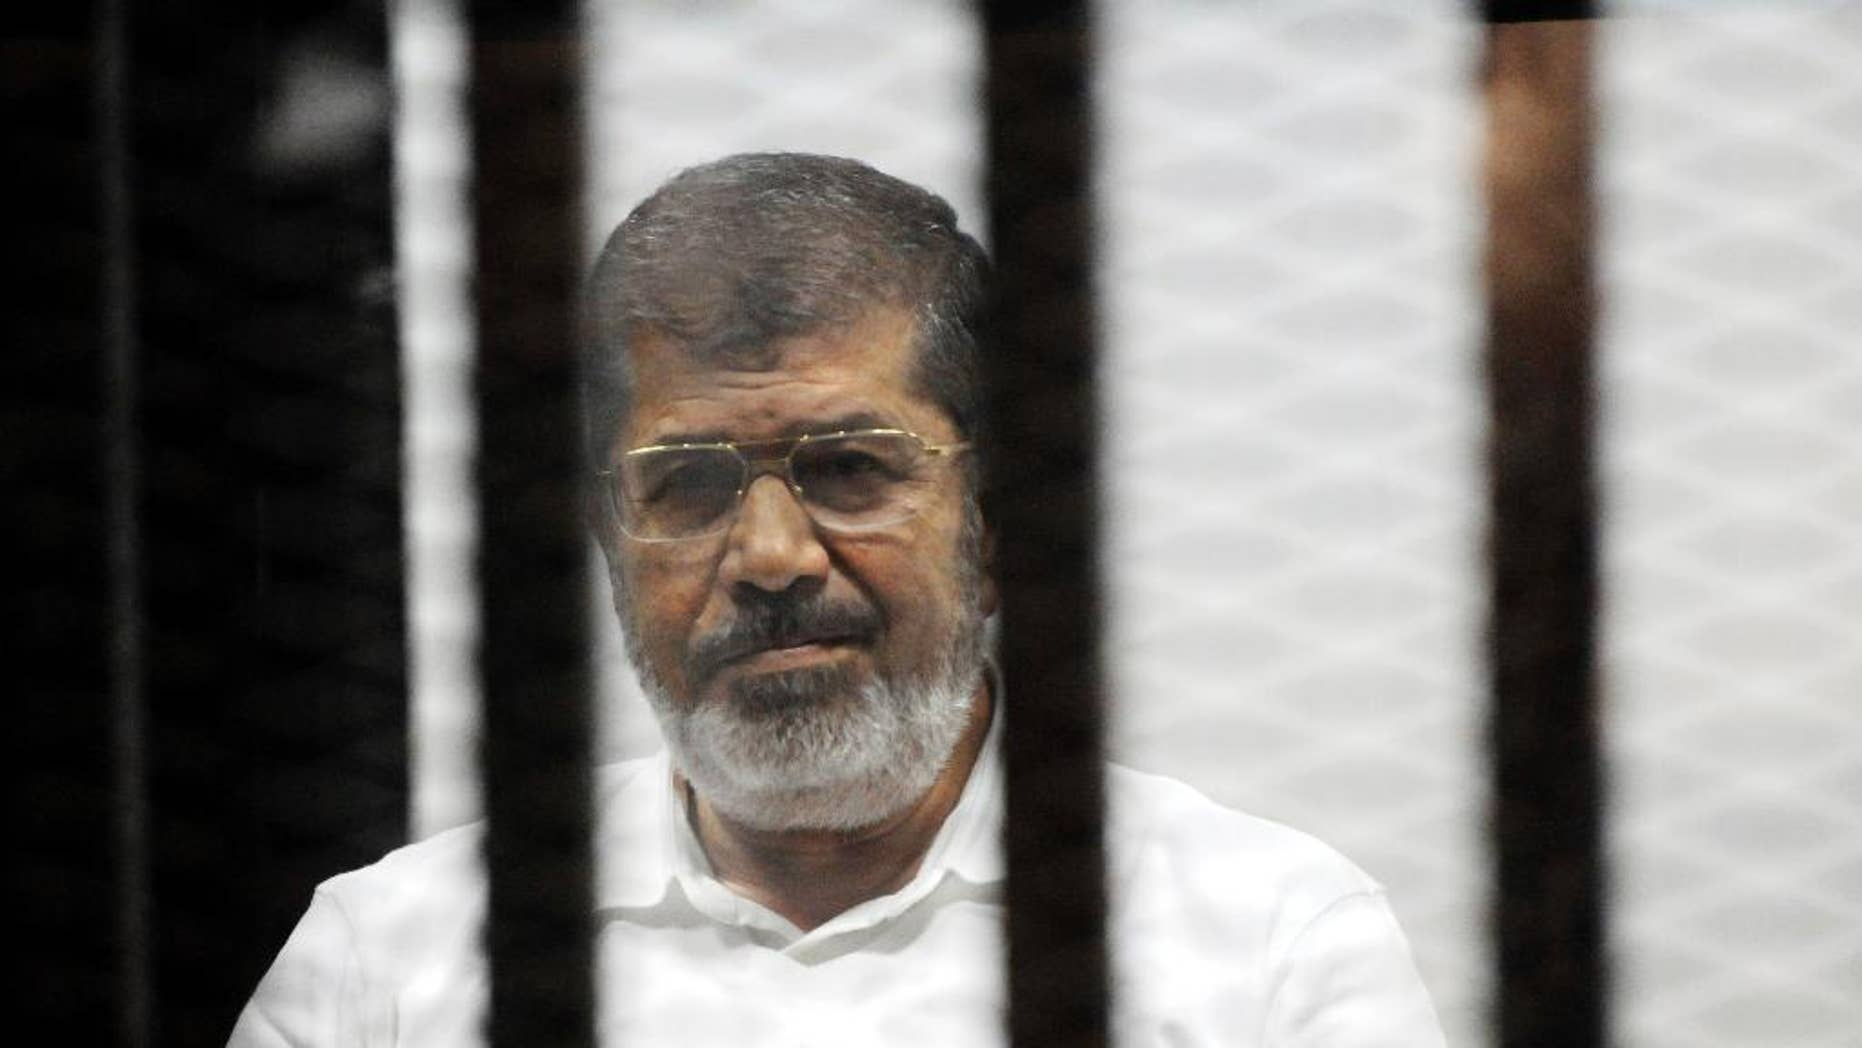 FILE - In this file photo taken Monday, Nov. 3, 2014, Egypt's ousted Islamist President Mohammed Morsi sits in the defendant cage in the Police Academy courthouse during a court hearing on charges of inciting the murder of his opponents, in Cairo, Egypt. Egypt's state news agency said prosecutors have asked for the death sentence for Morsi and other Muslim Brotherhood leaders on trial on espionage charges. (AP Photo/Mohammed al-Law, File)